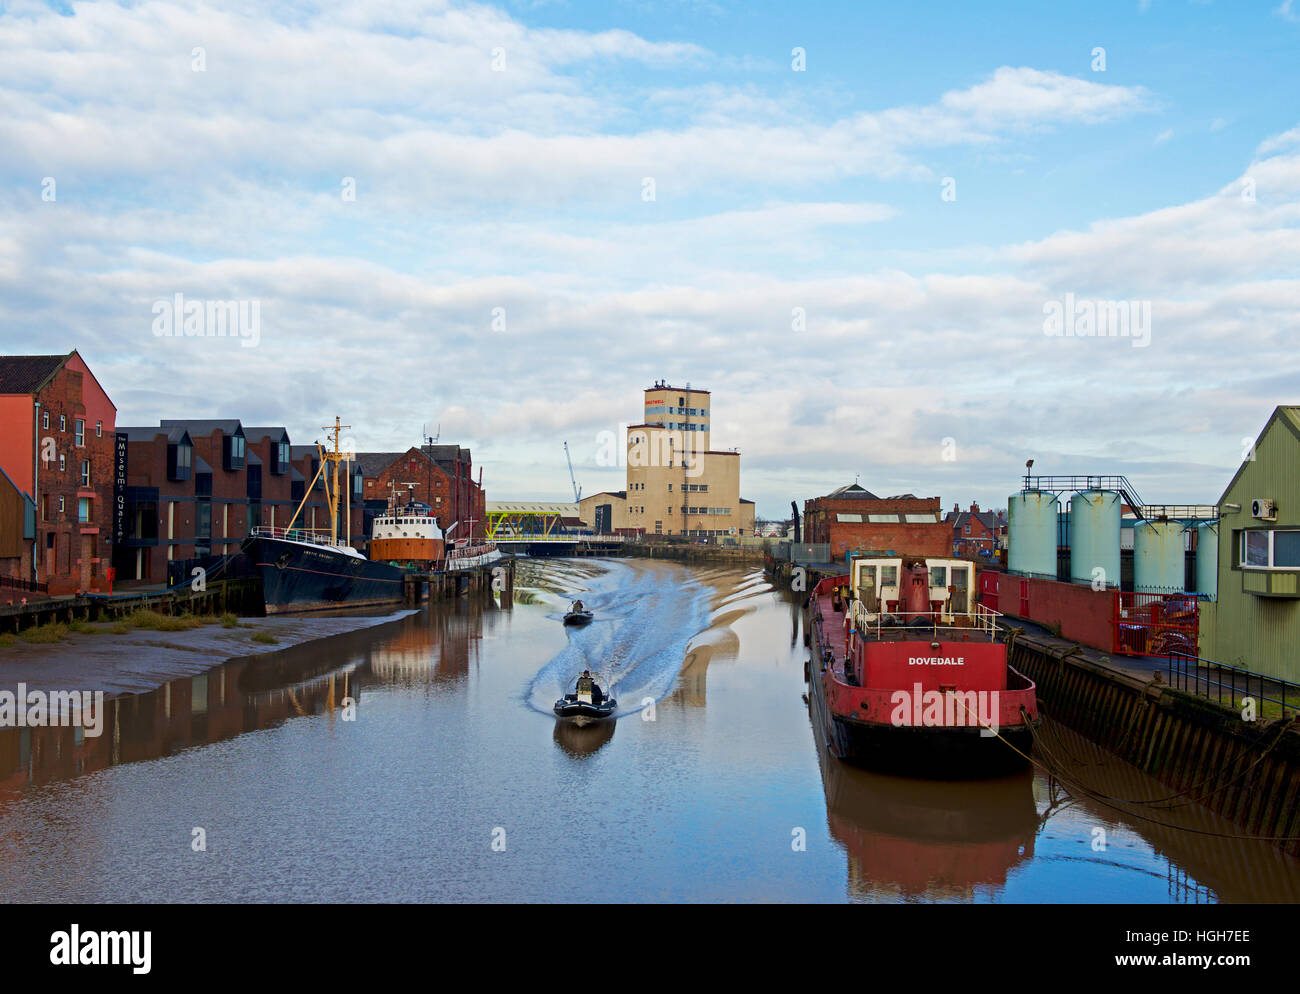 Rib inflatable dinghies on the River Hull, Kingston upon Hull, East Riding of Yorkshire, Humberside, England UK - Stock Image